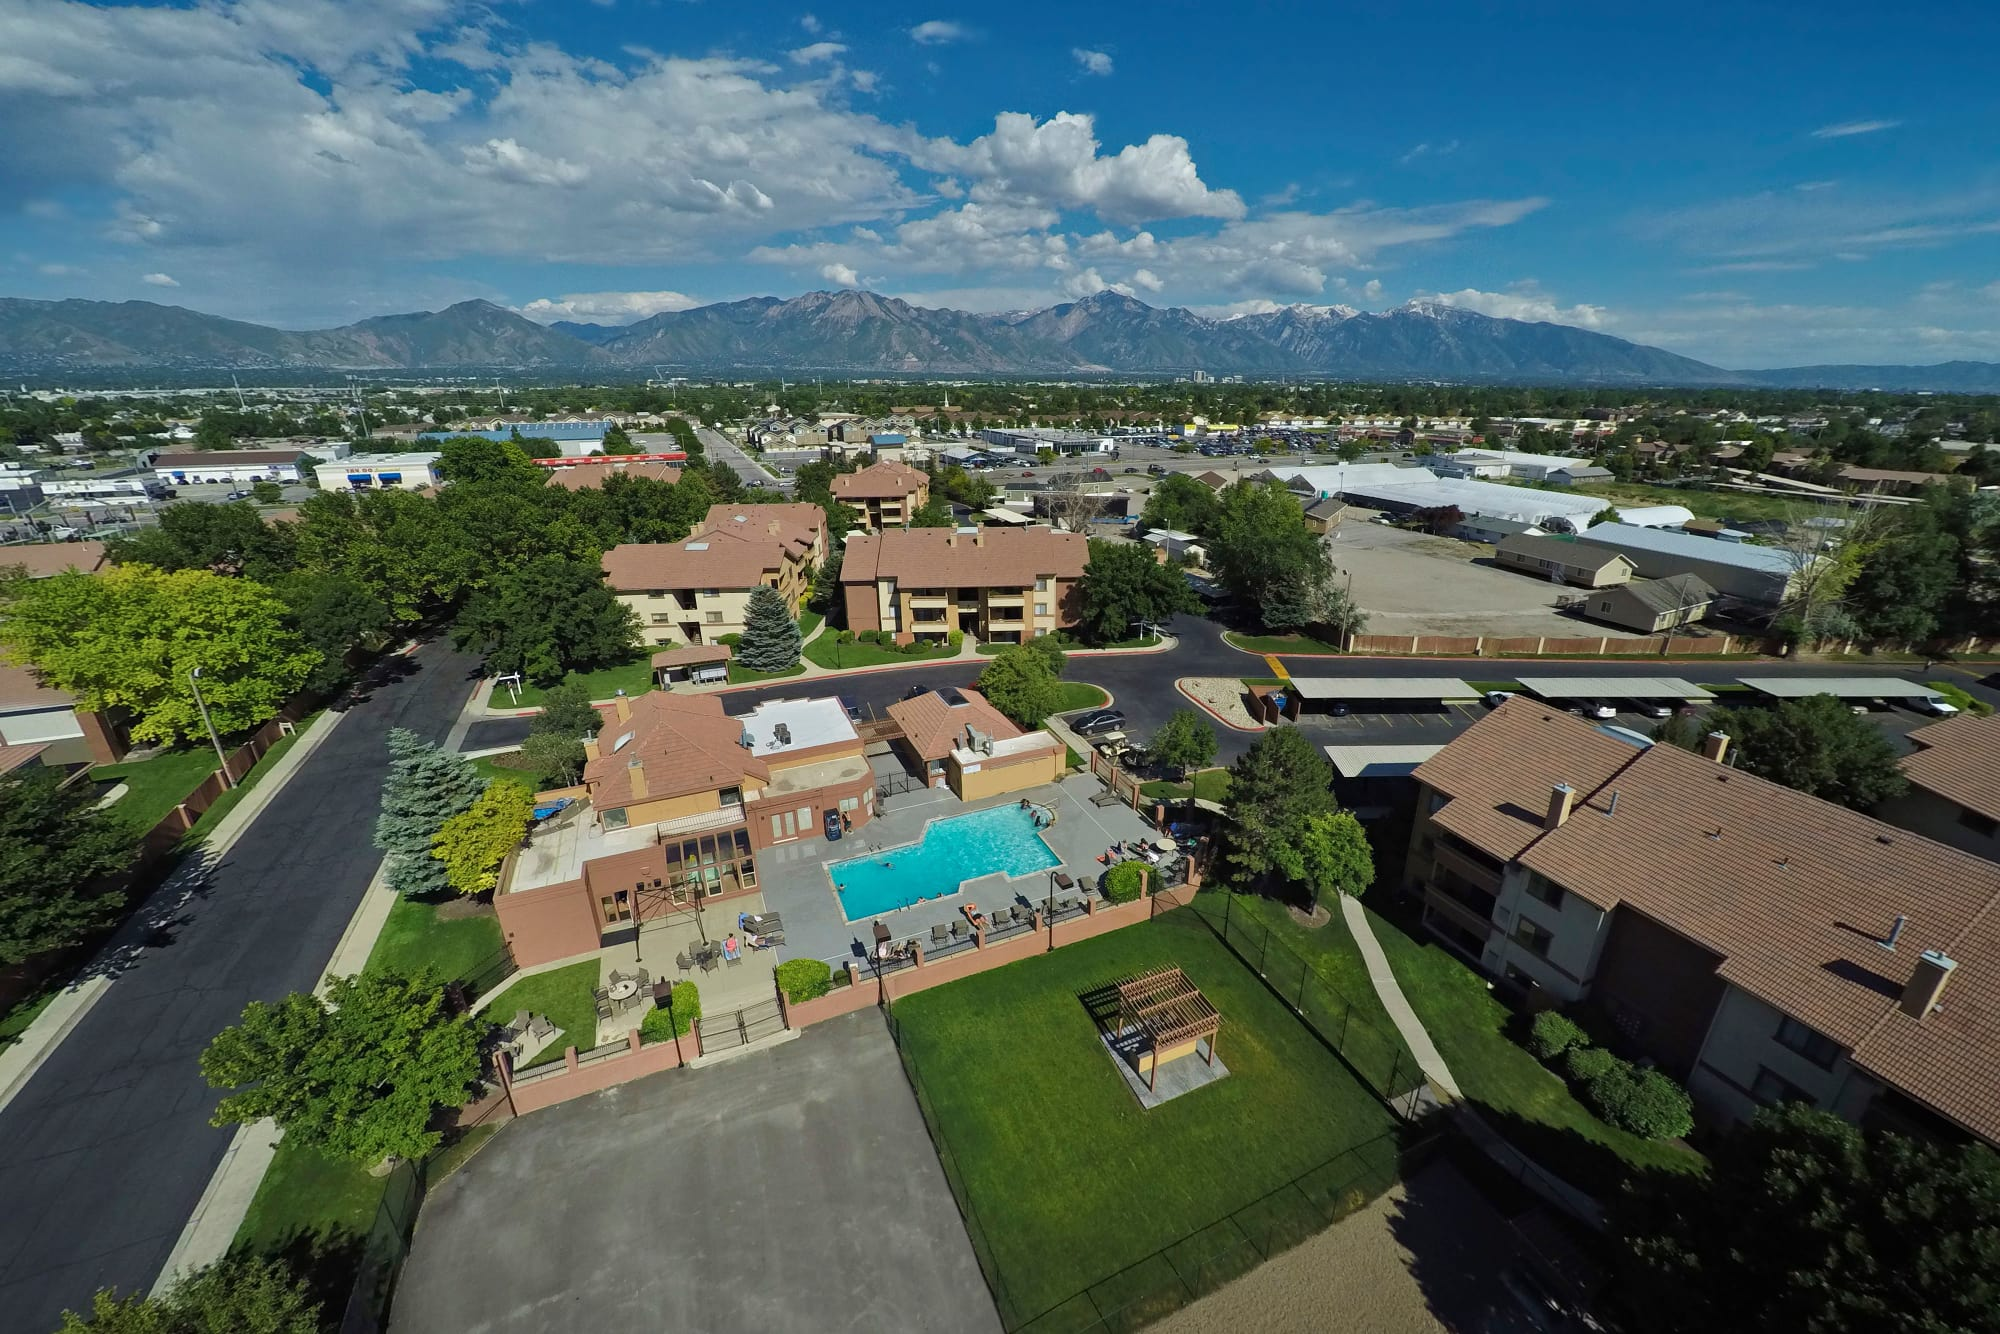 Aerial view of the property and surrounding area at Shadowbrook Apartments in West Valley City, Utah